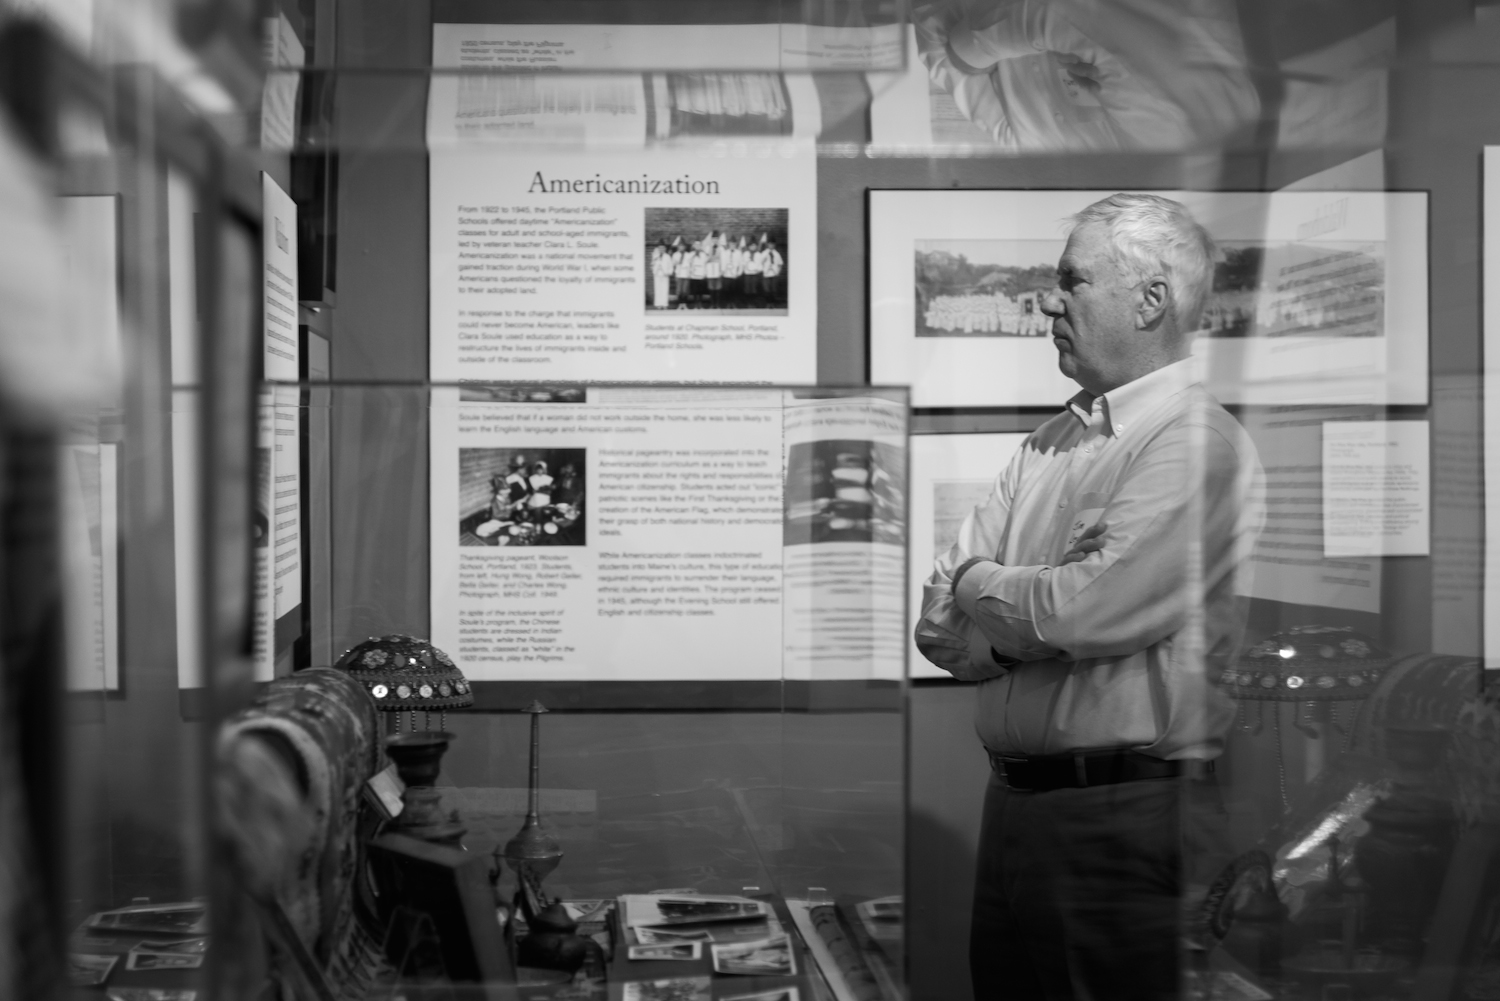 A member of Maine Historical Society takes in artifacts on display for  400 Years of New Mainers , an exhibition on immigration in Maine at Maine Historical Society in Portland on February 4, 2016.